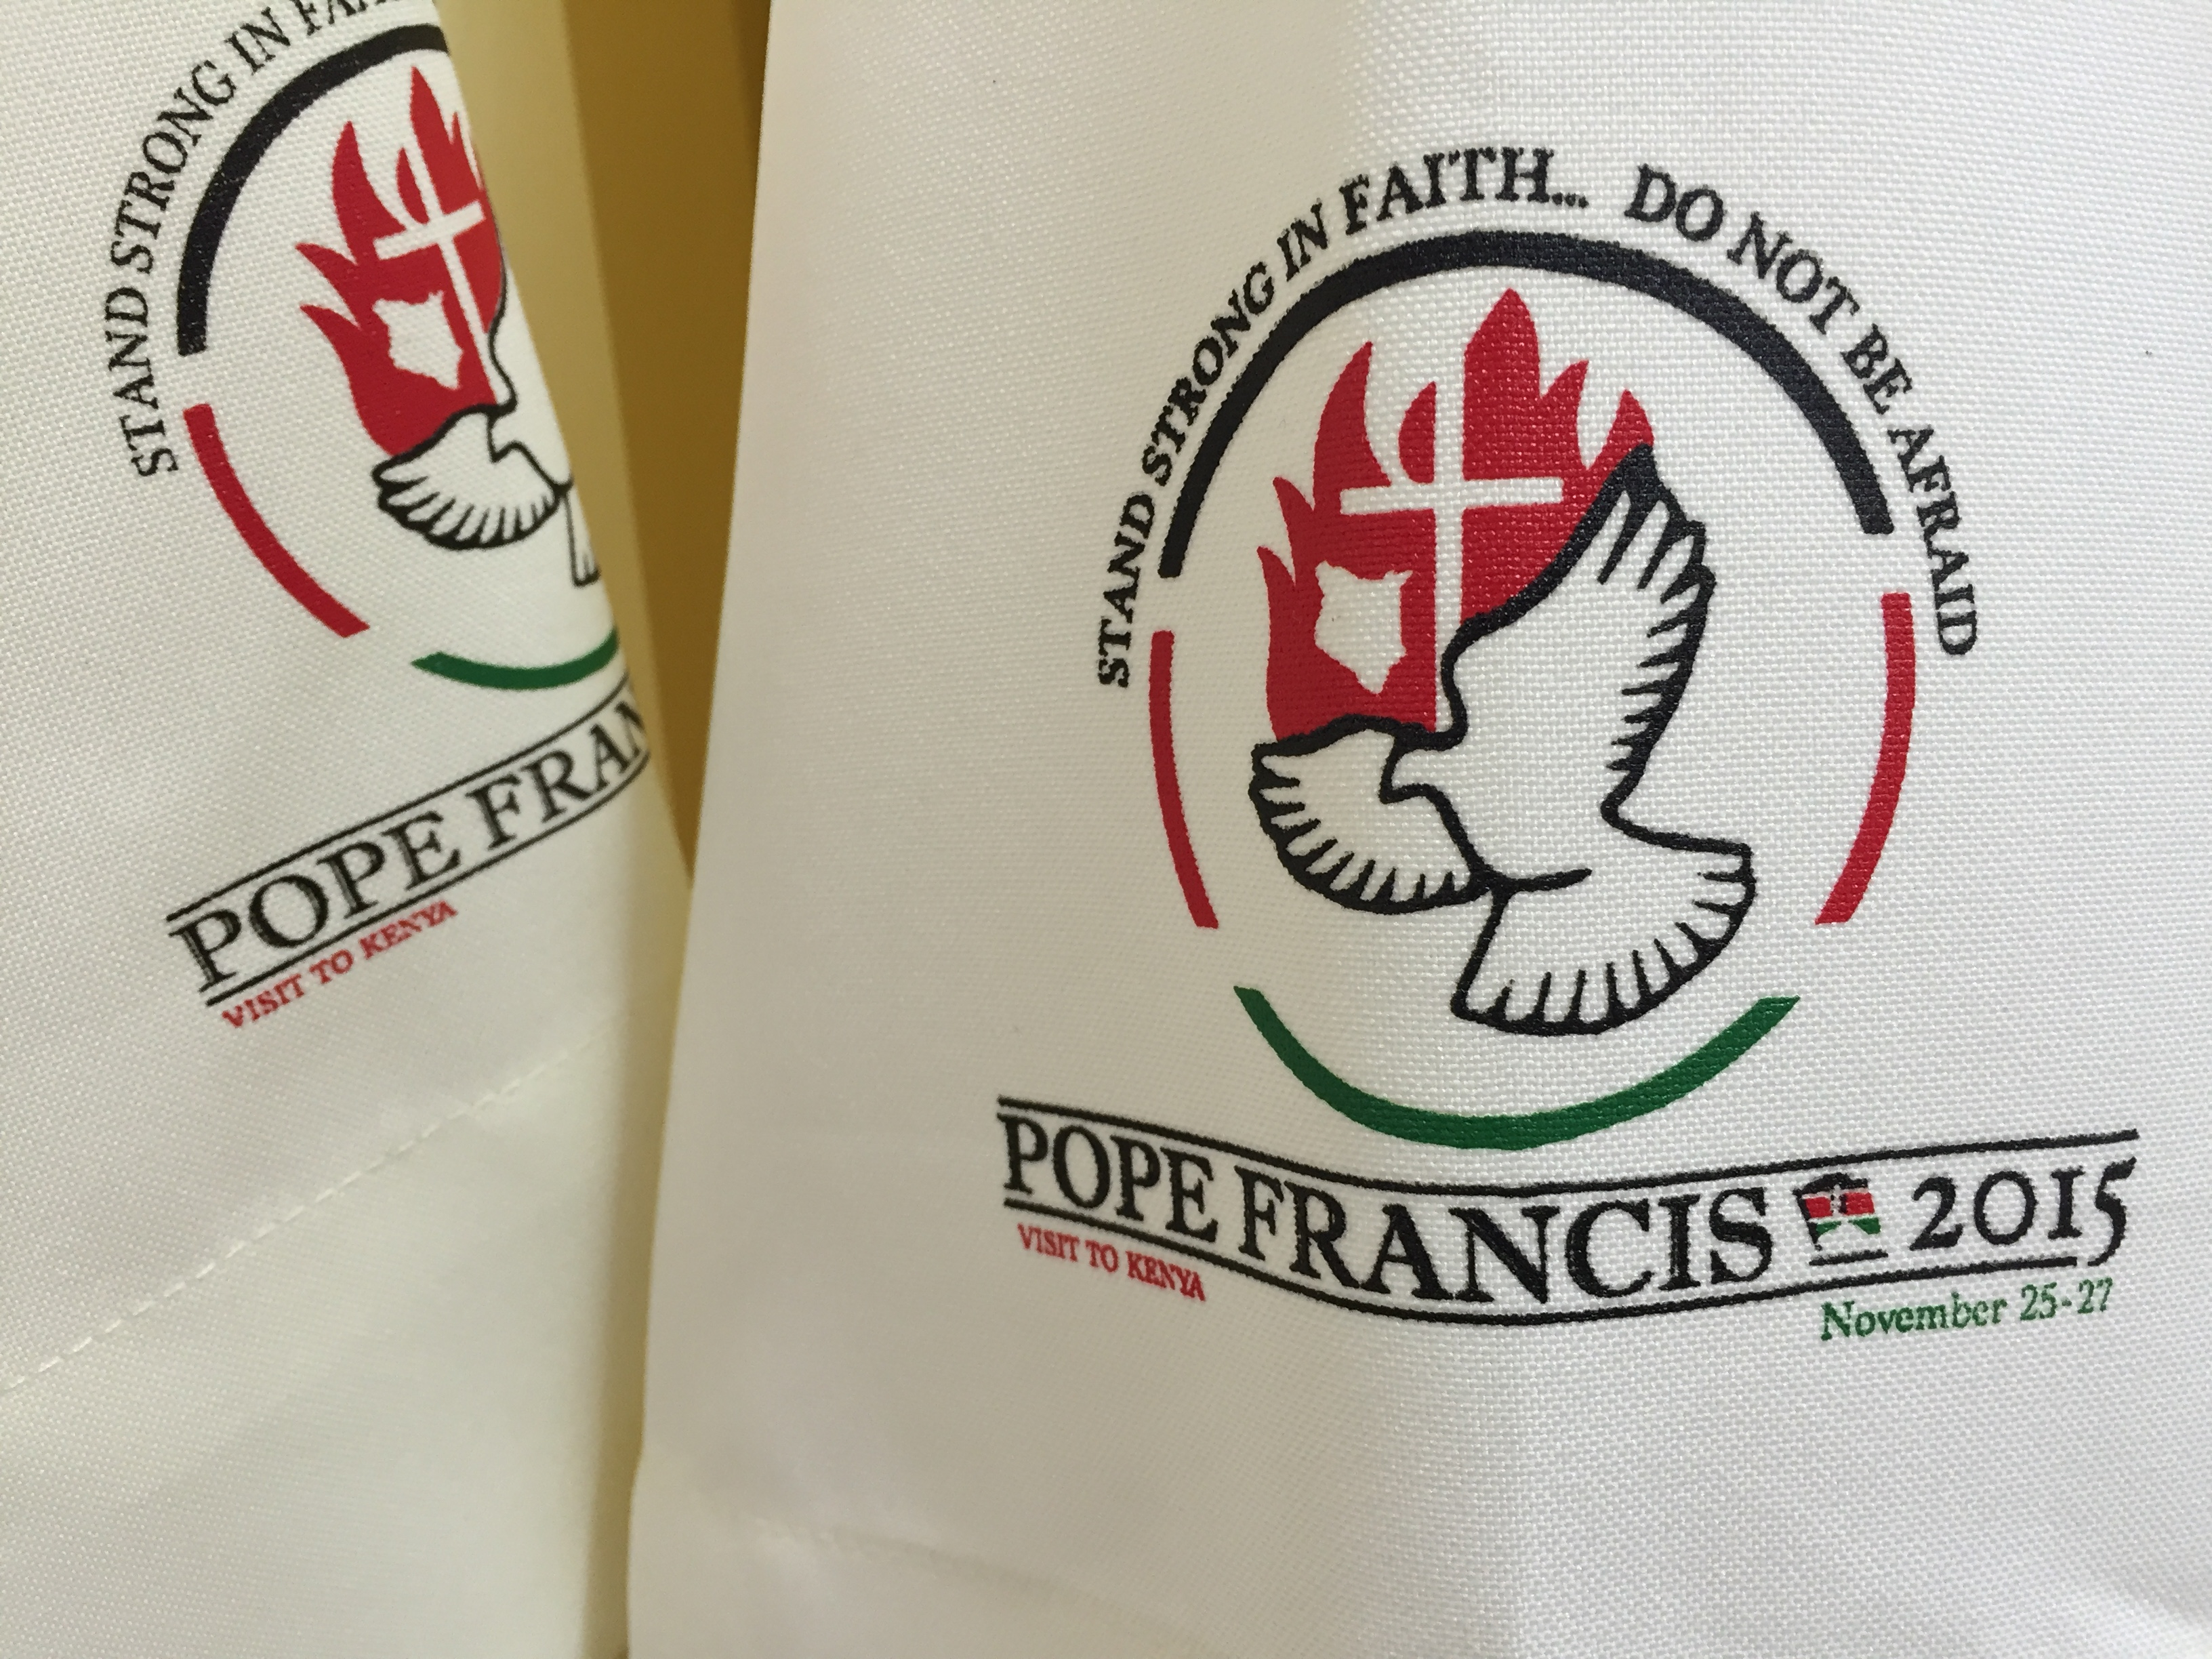 Officially branded alb to be presented to priests, bishops, and other church officials during Pope Francis's upcoming visit to Nairobi, Kenya, Nov. 12, 2015.